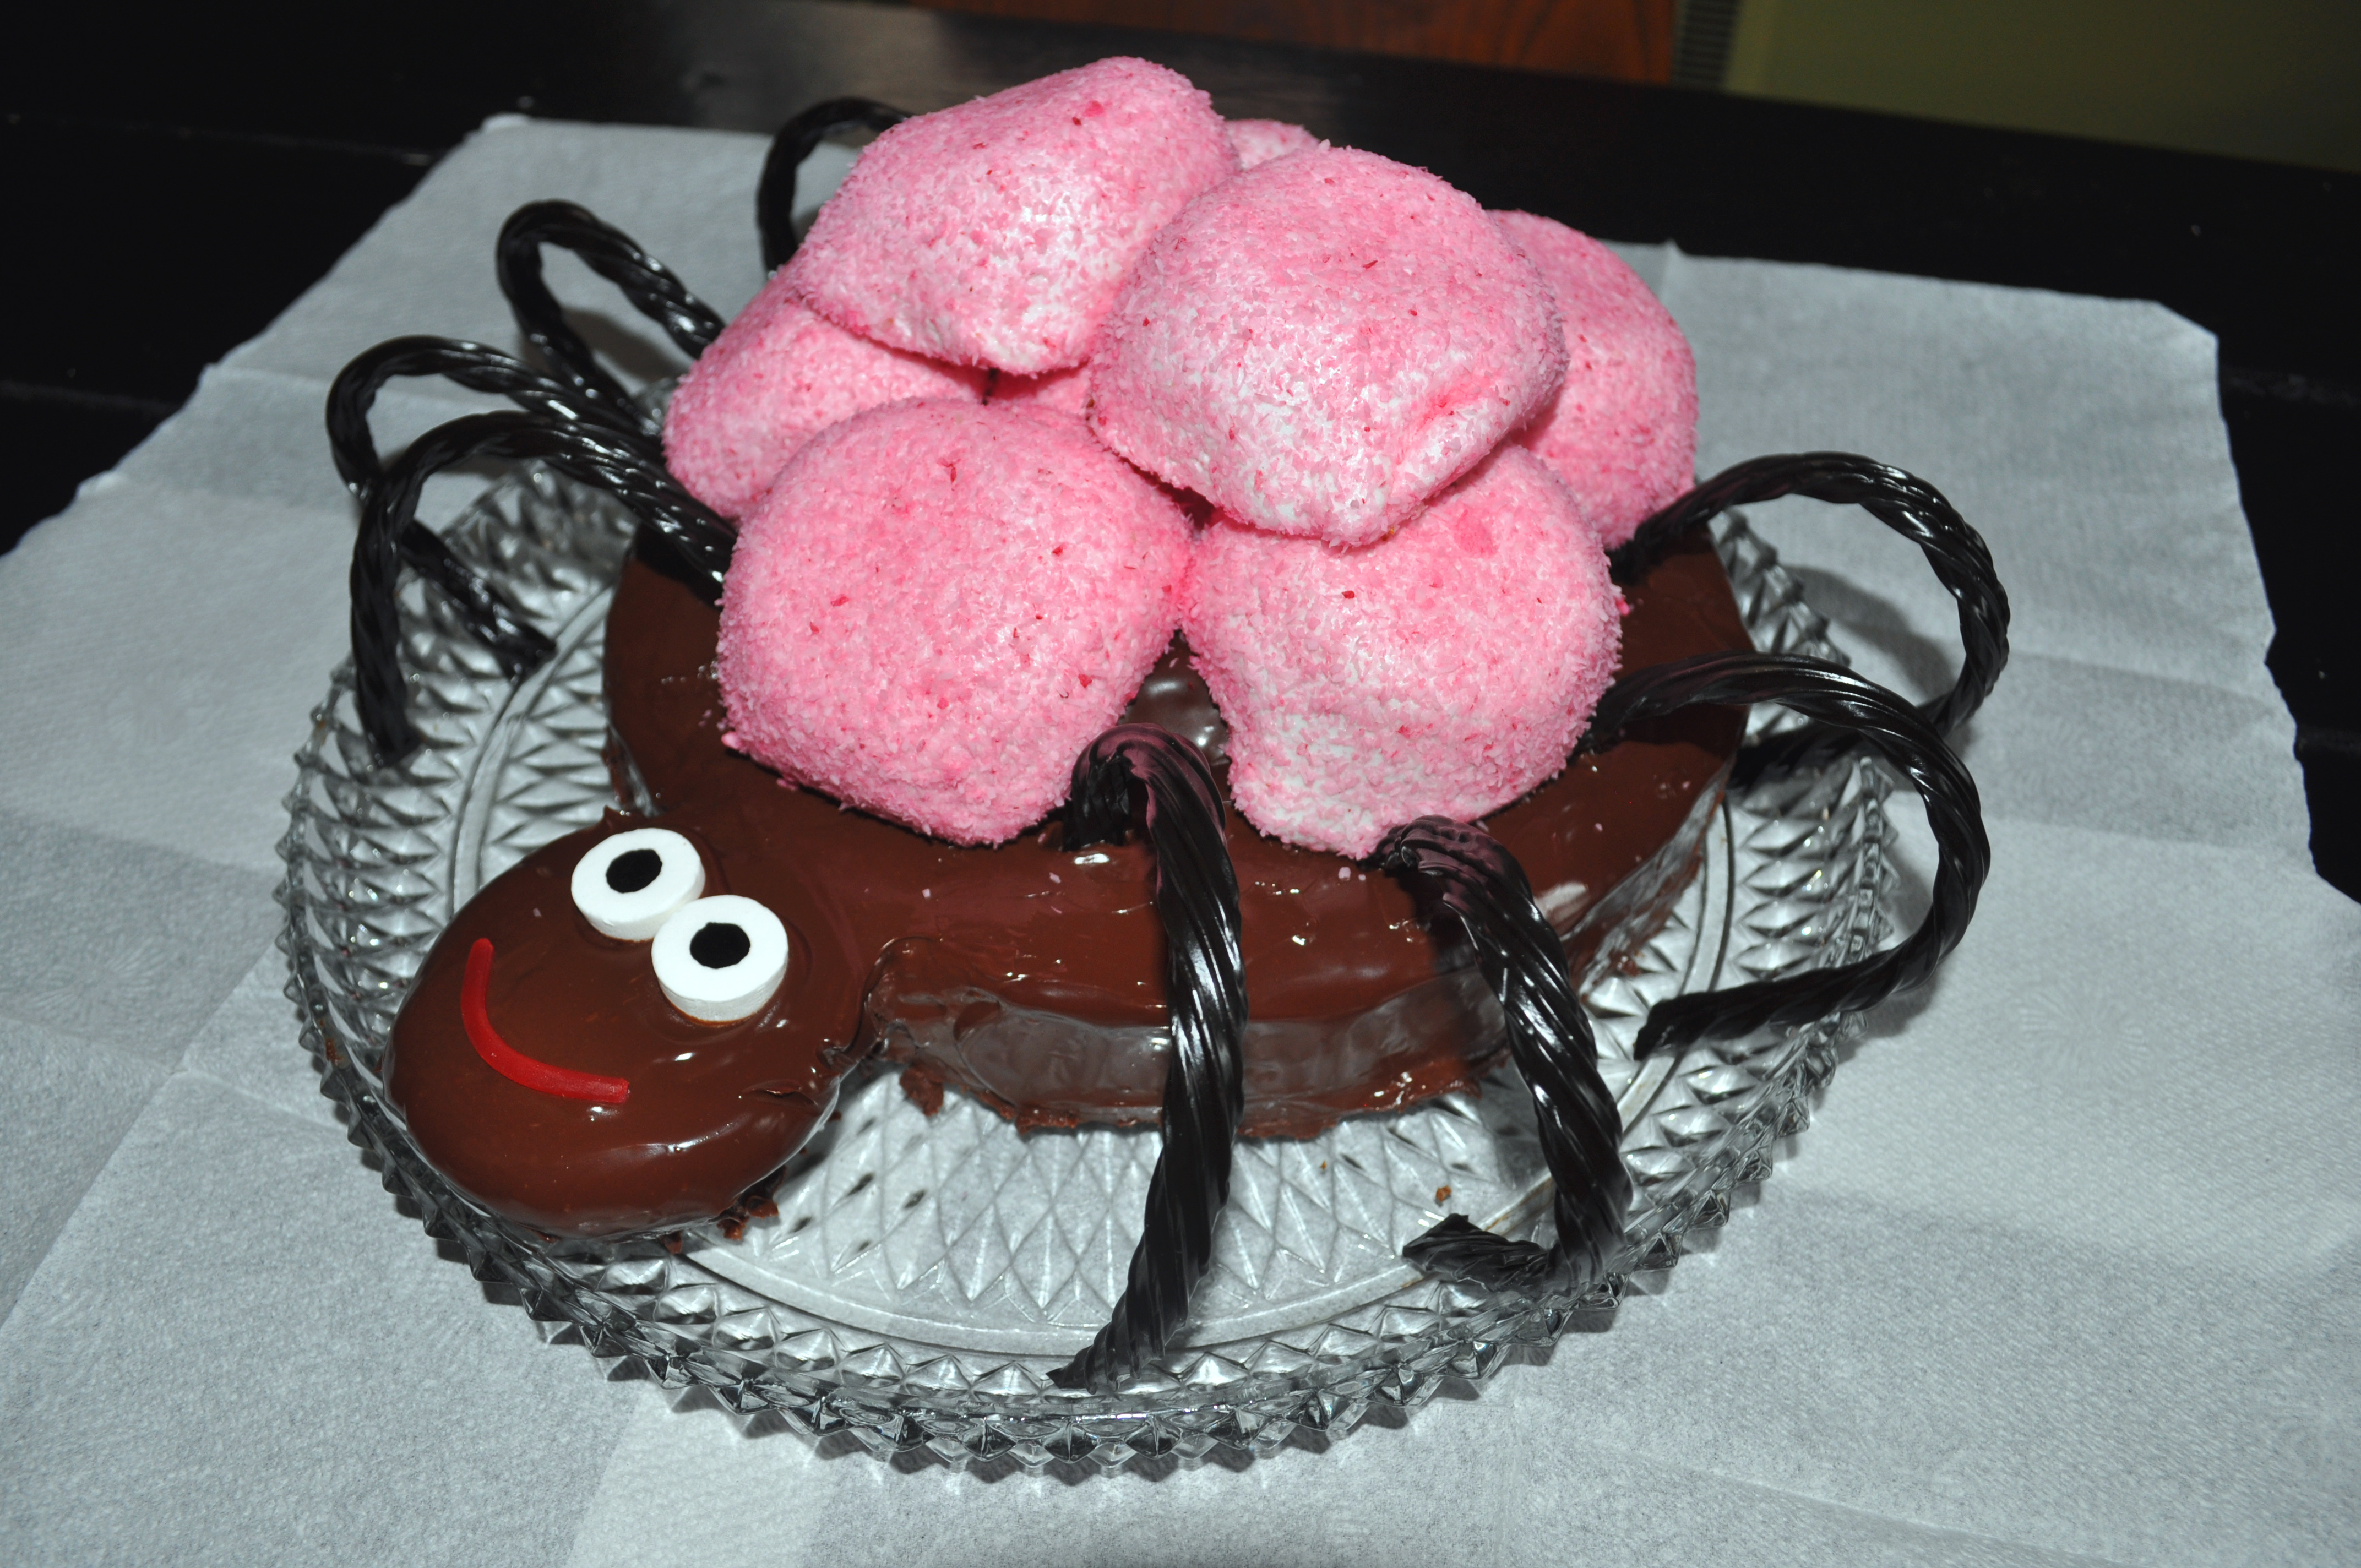 Creepy Cake N Bake; Not-So-Creepy, Crawly SPEE-IDER! | Author Michelle ...